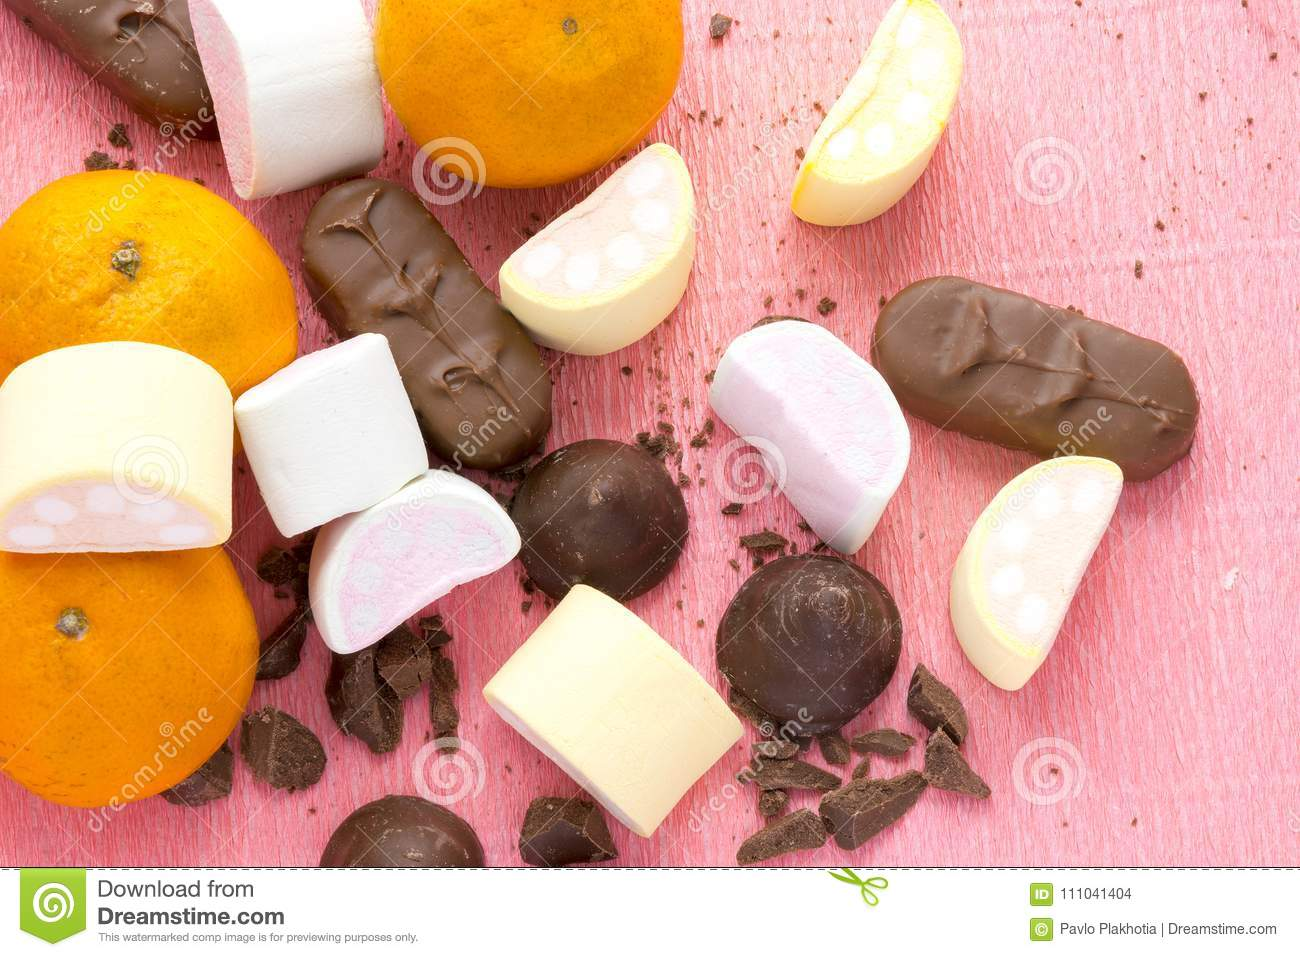 Oranges, chocolate and zephyr on pink background. Cooking of homemade sweets.